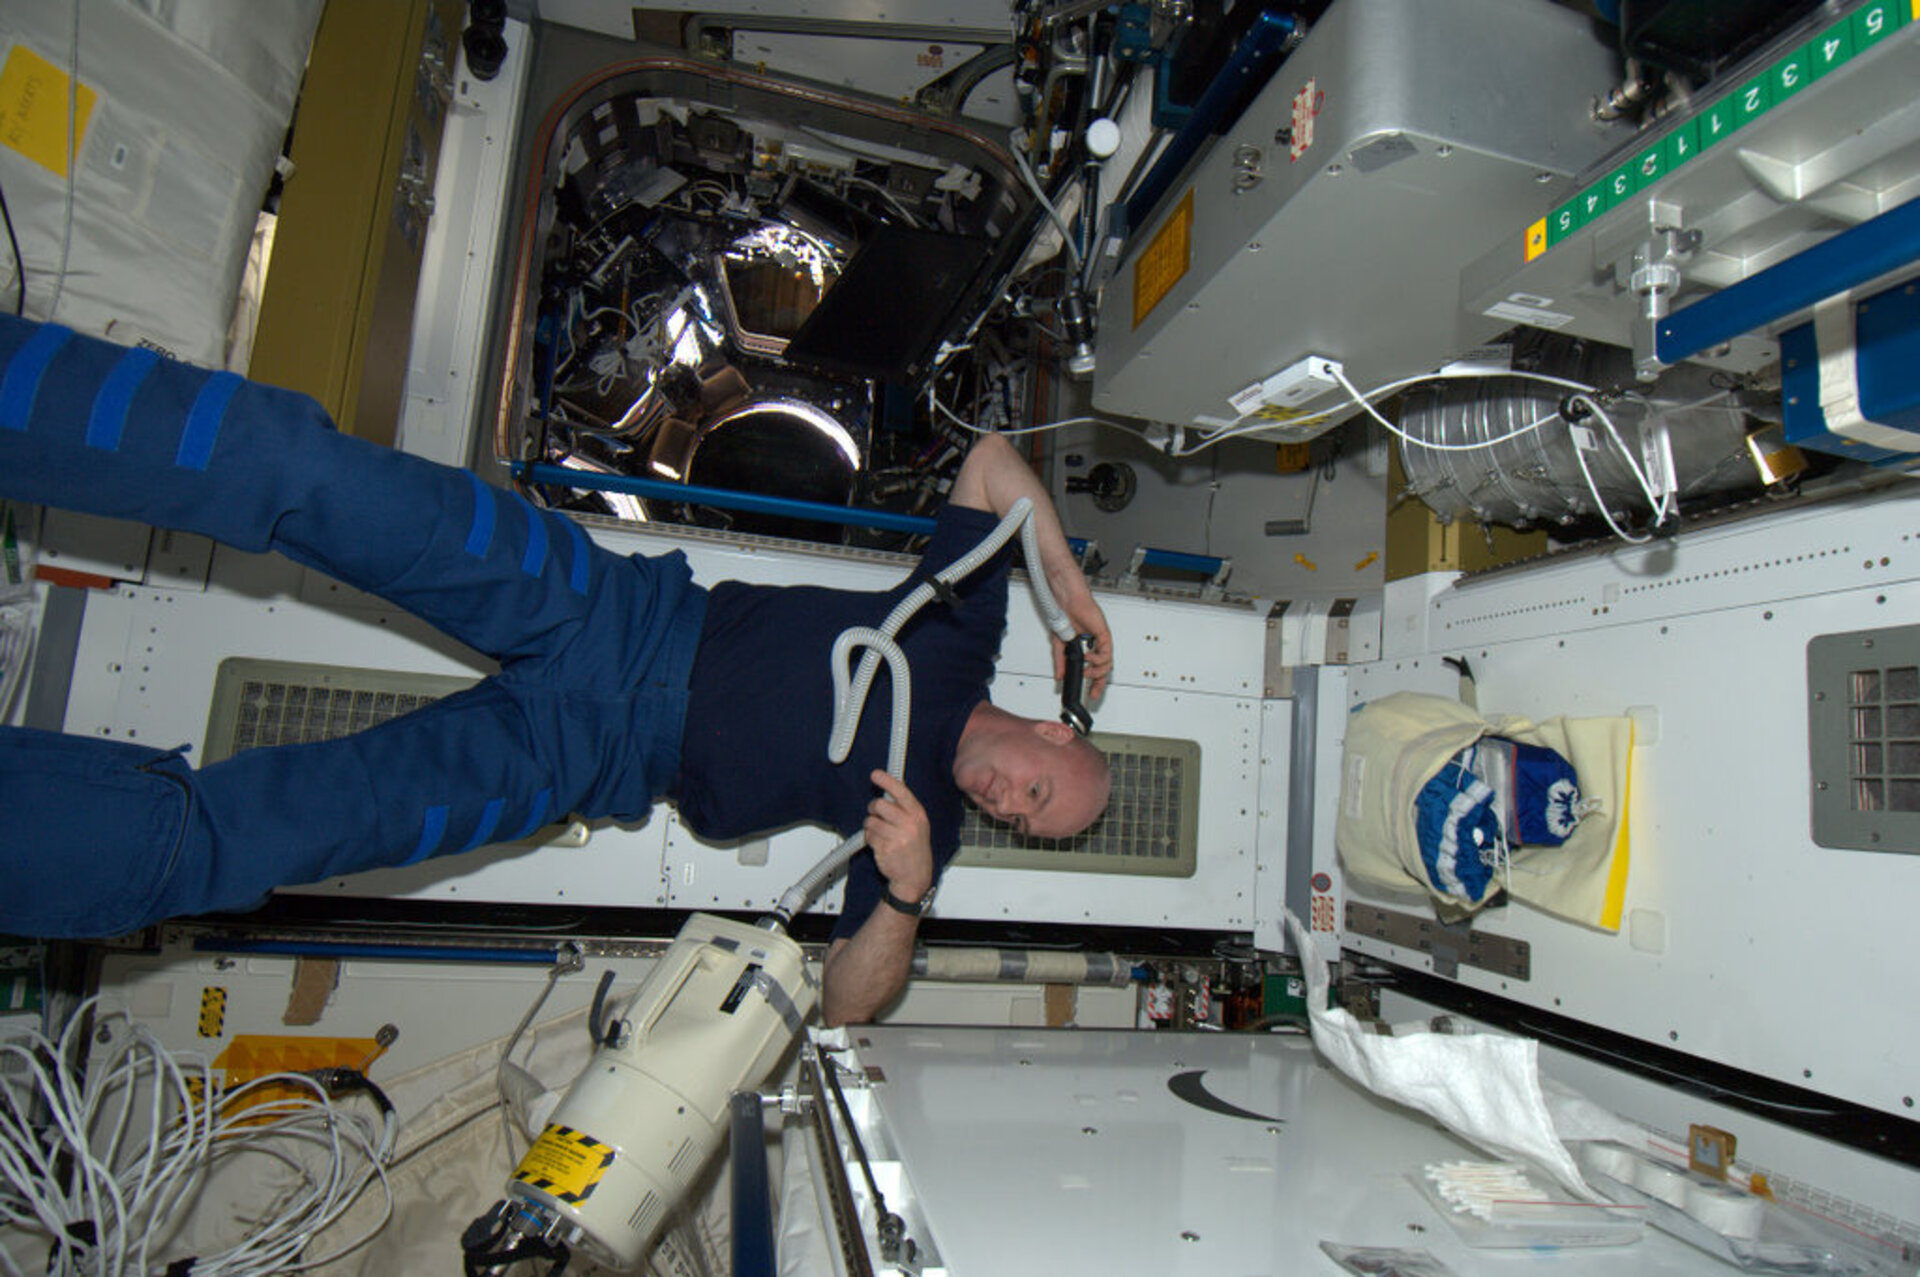 Andre Kuipers shaving his head onbard the ISS